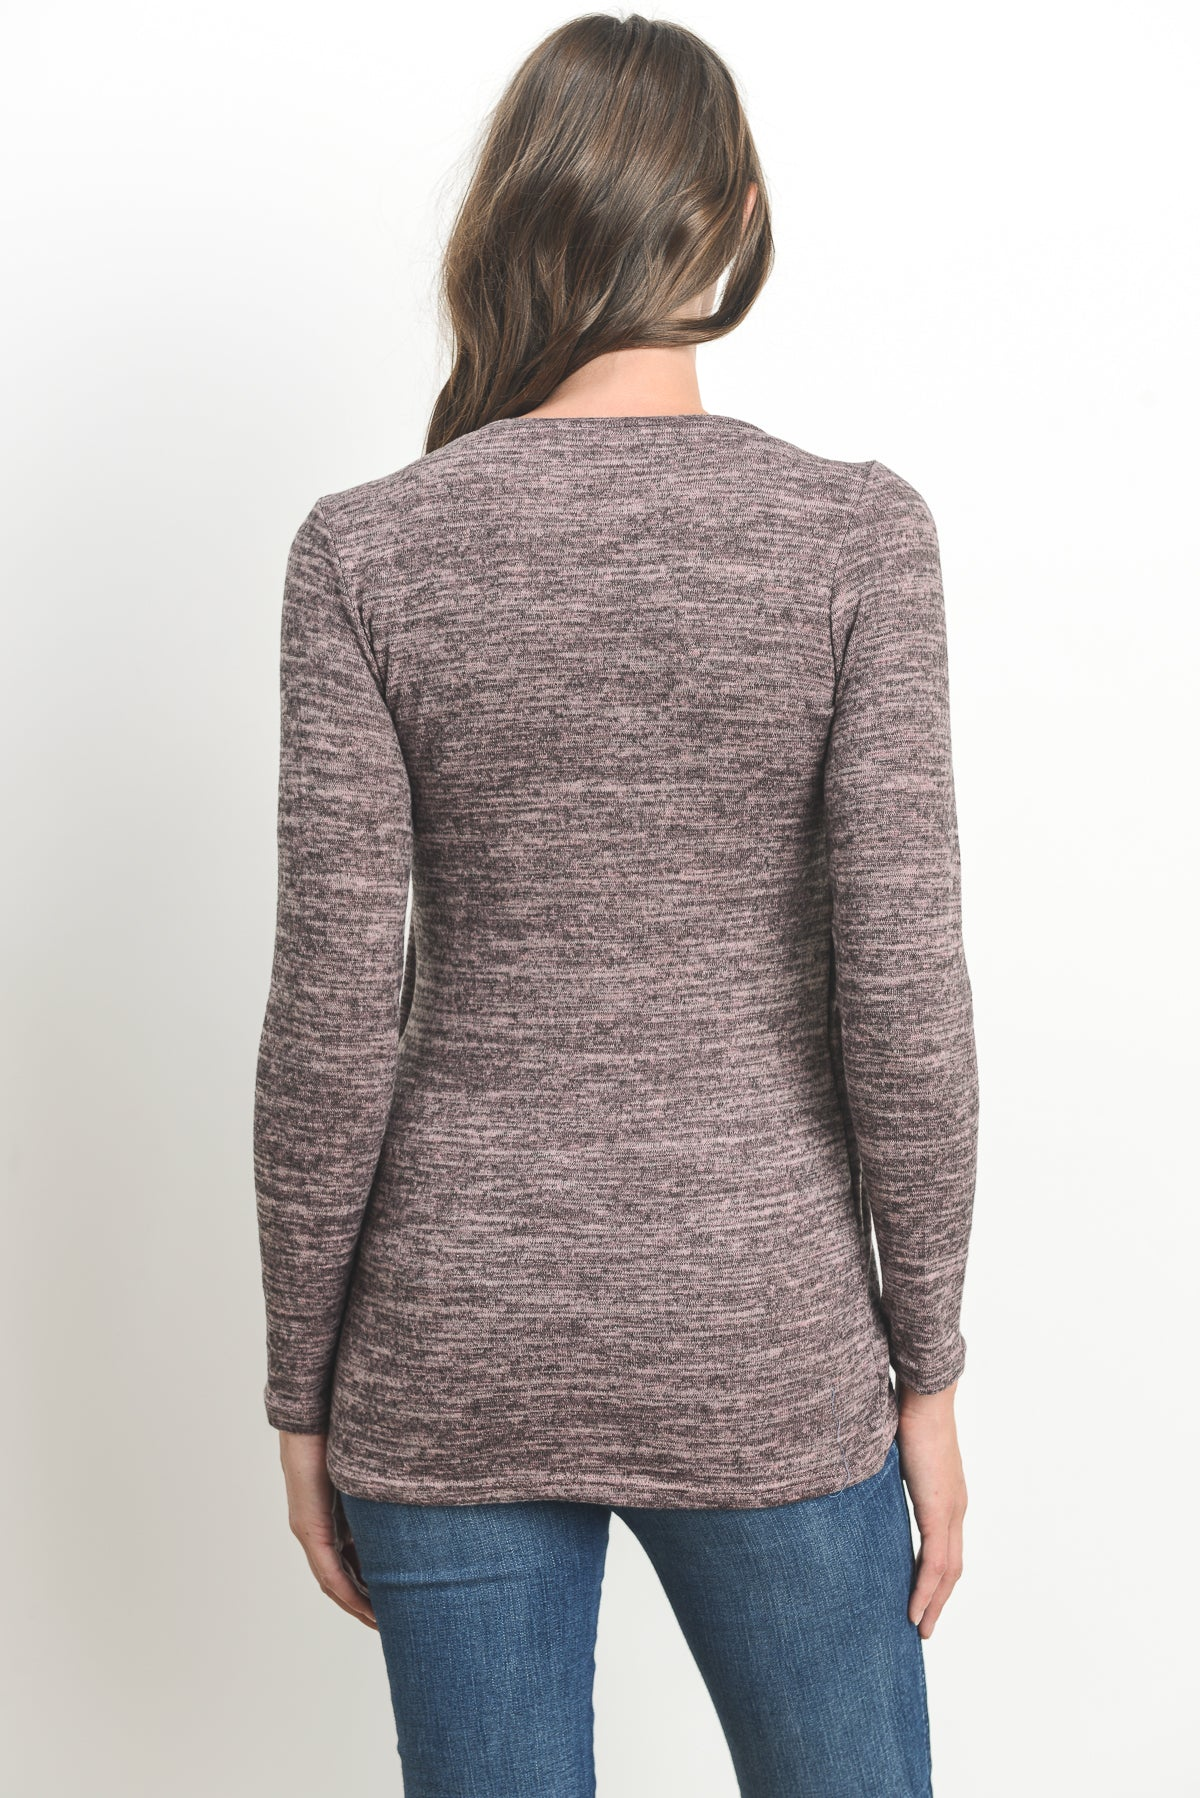 Long Sleeve Nursing Top